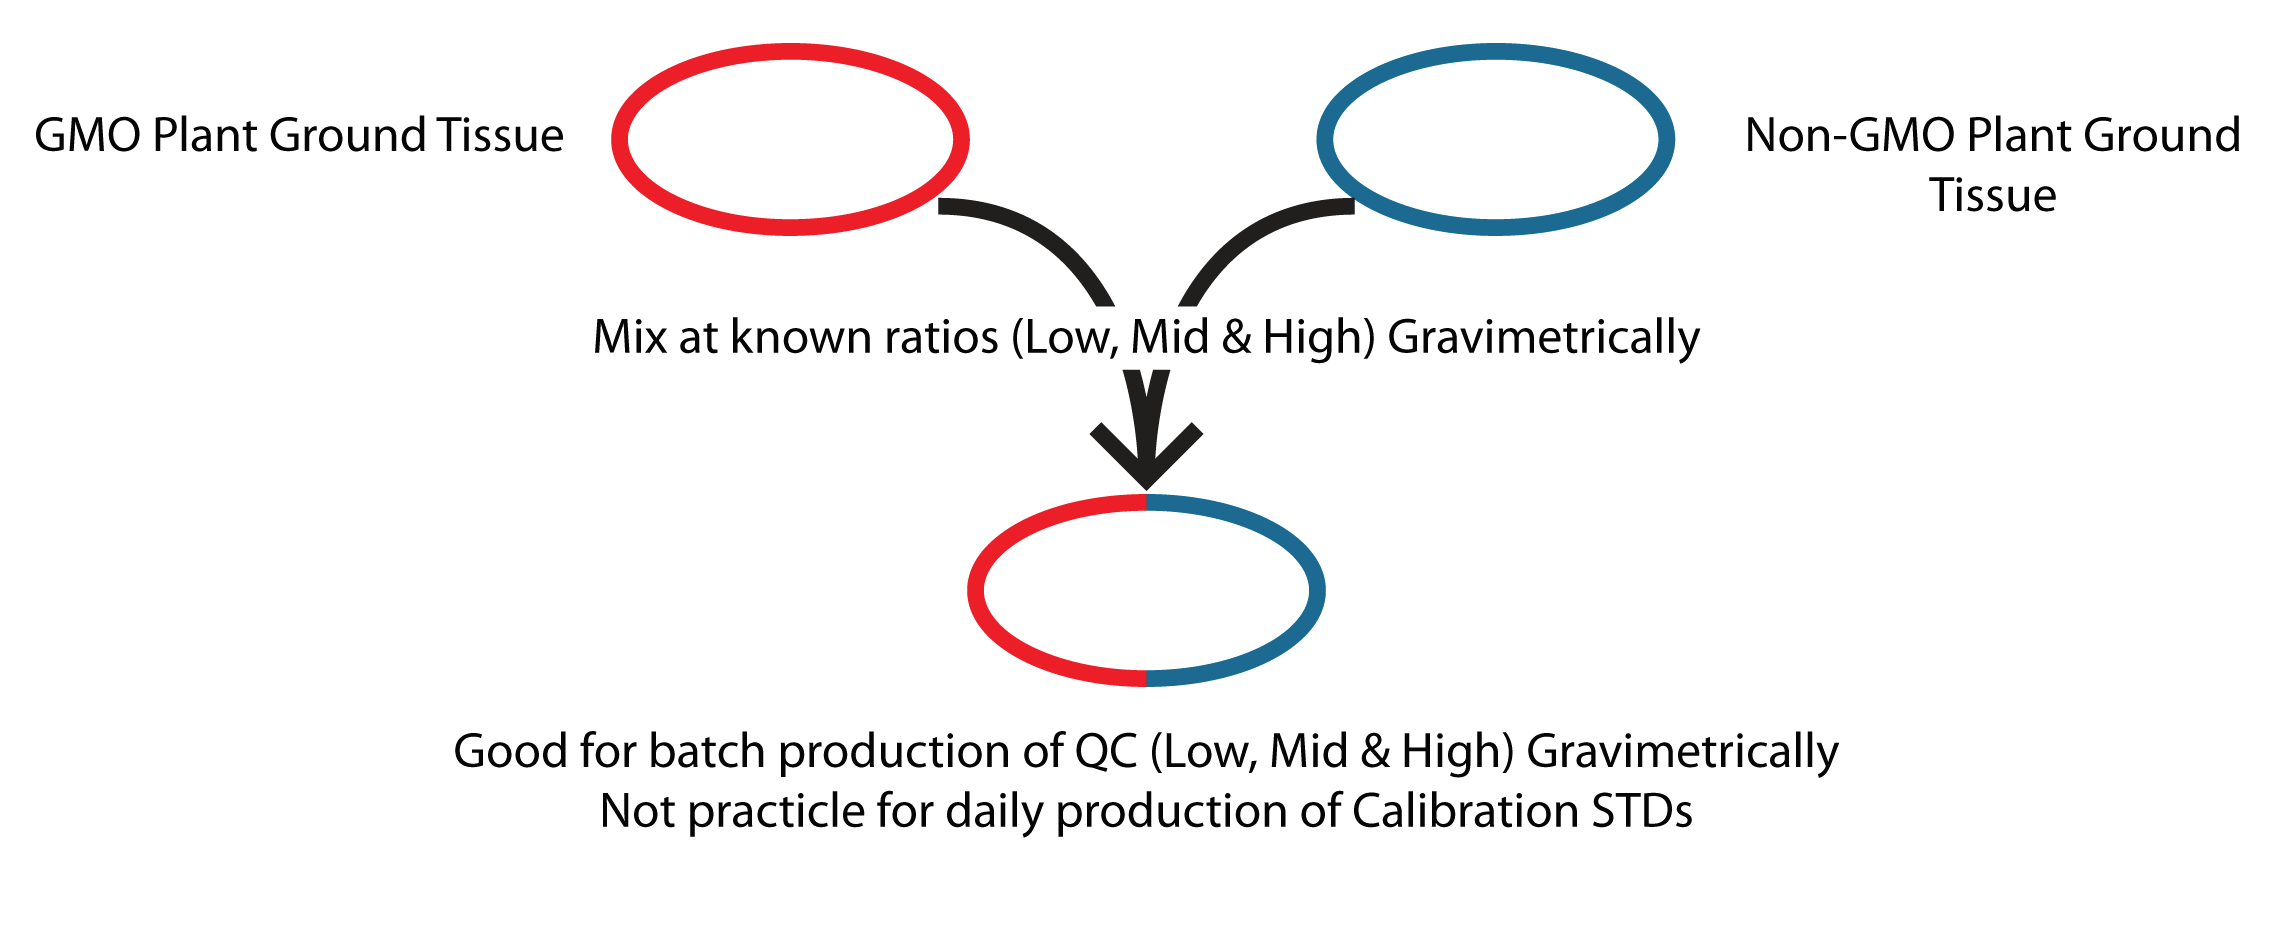 Figure 1. Graimetric approach for batch production of QC